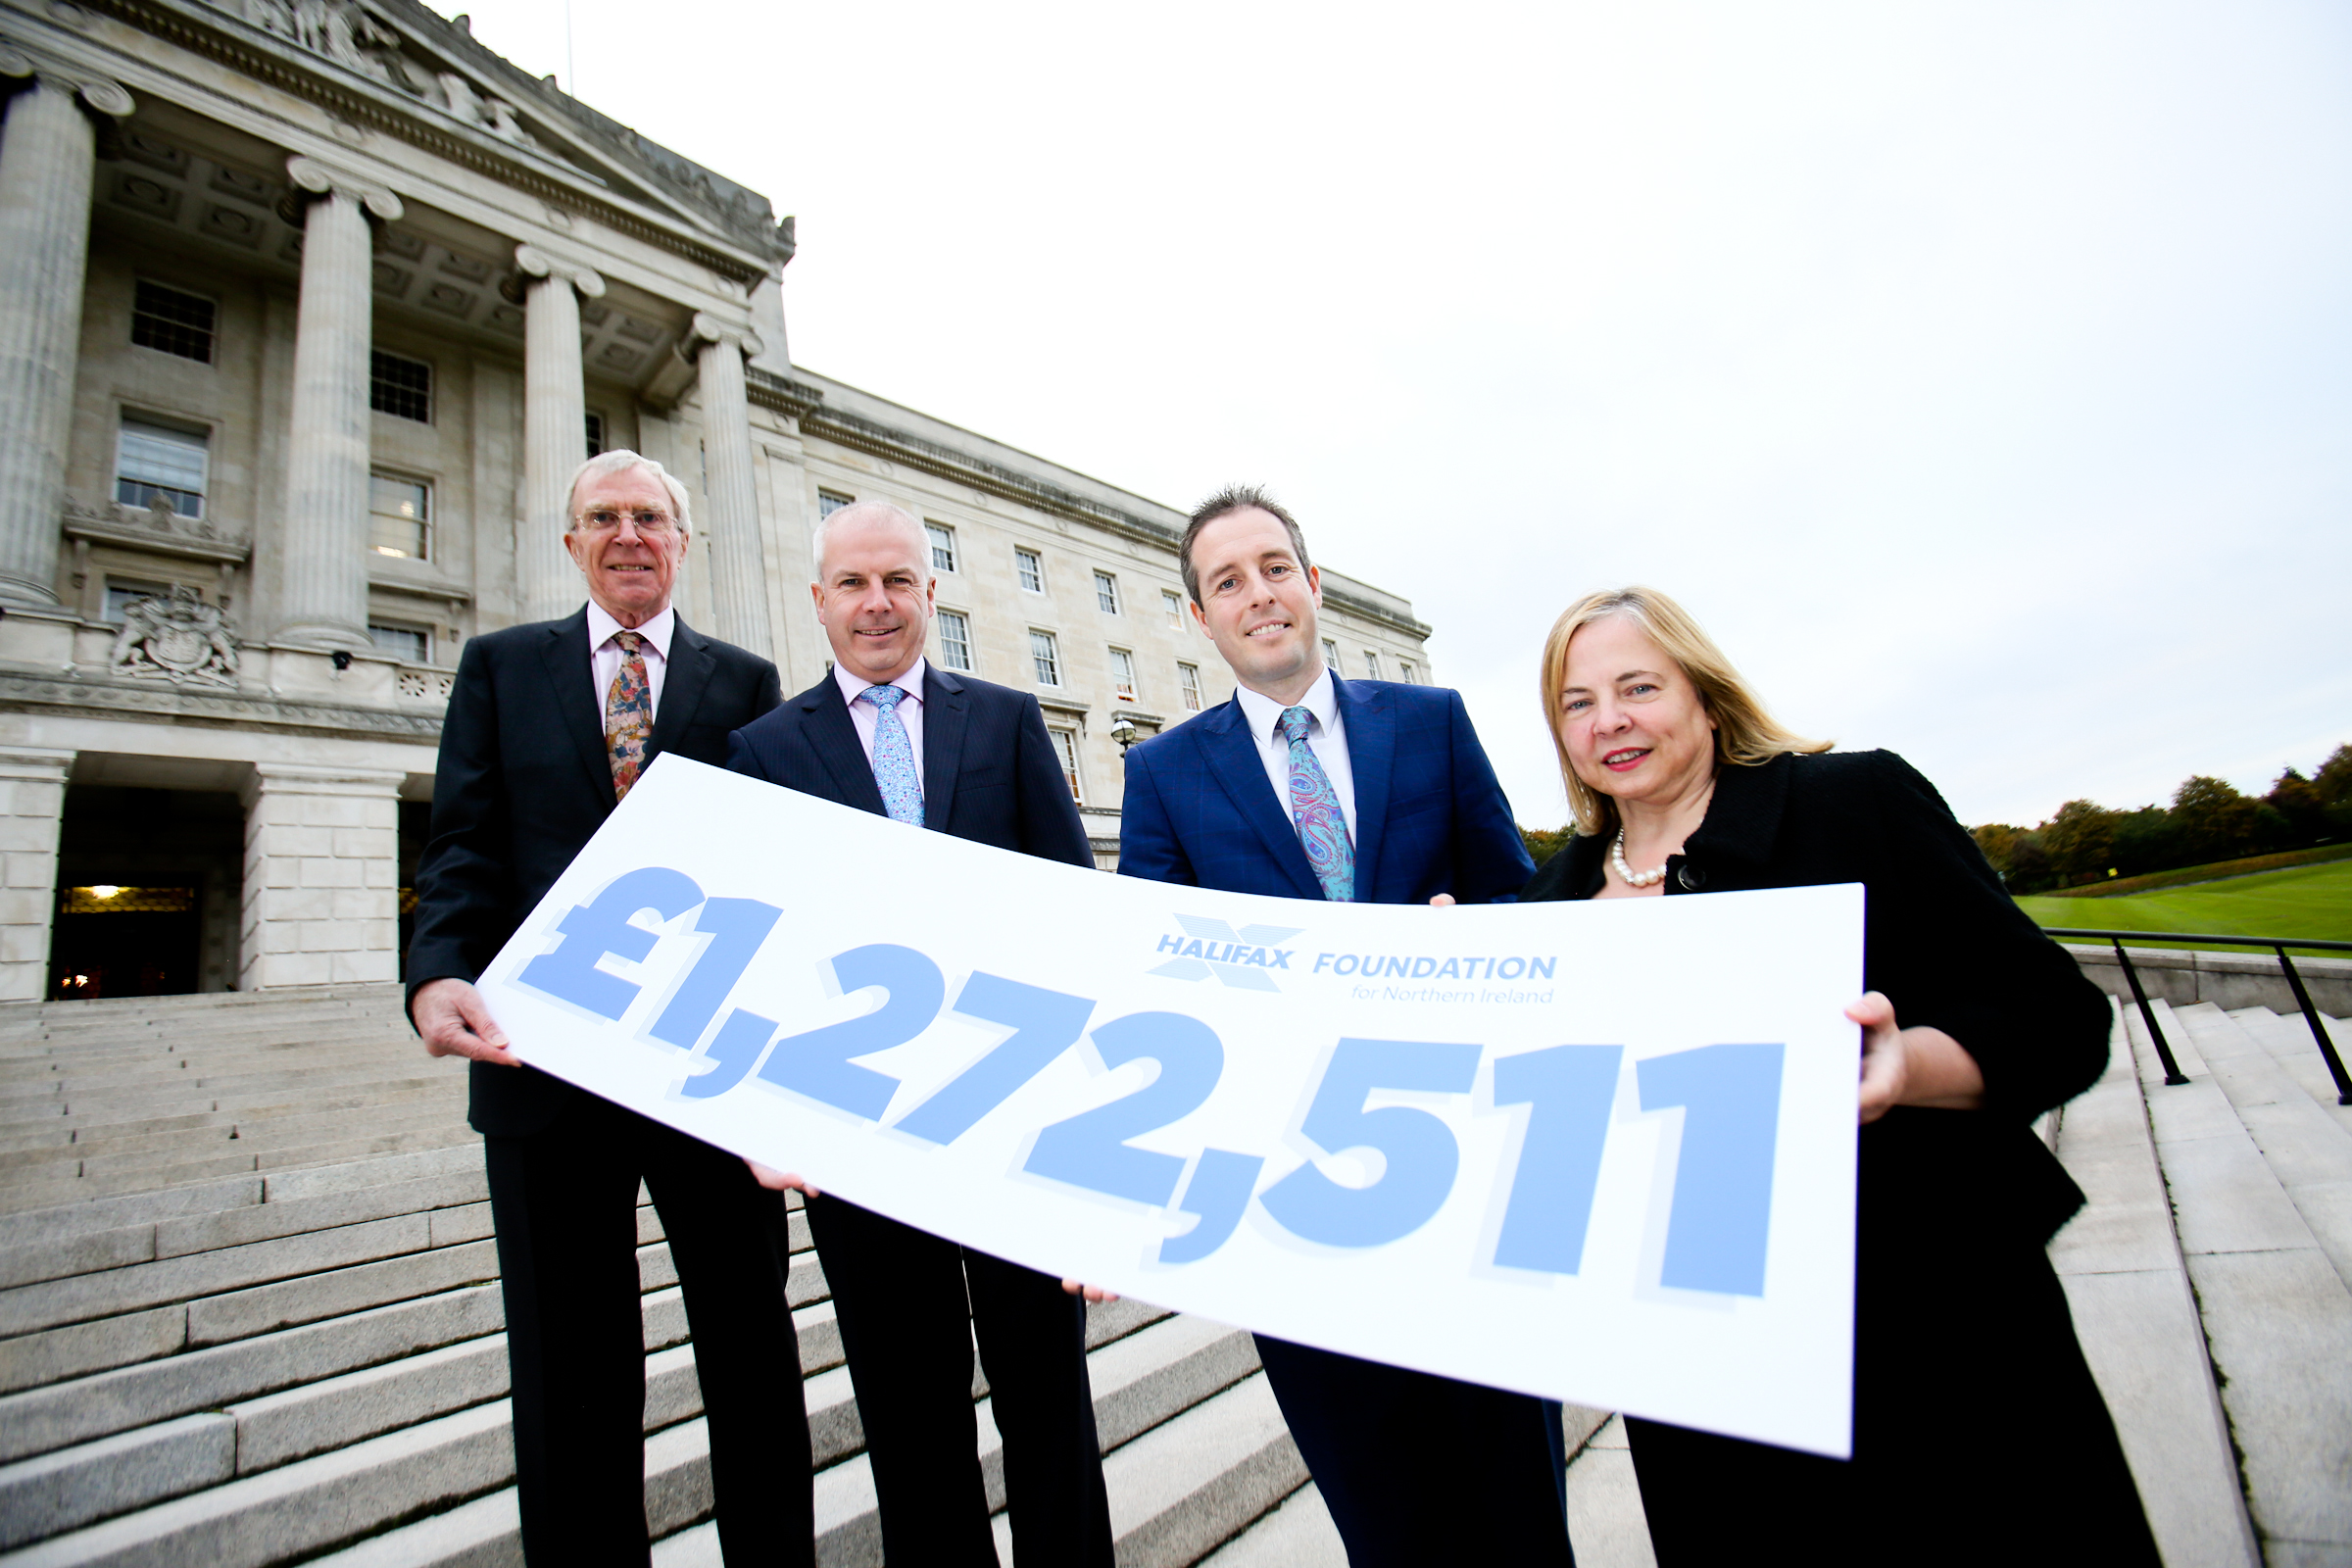 Halifax Foundation gives £1.3 million to NI charities